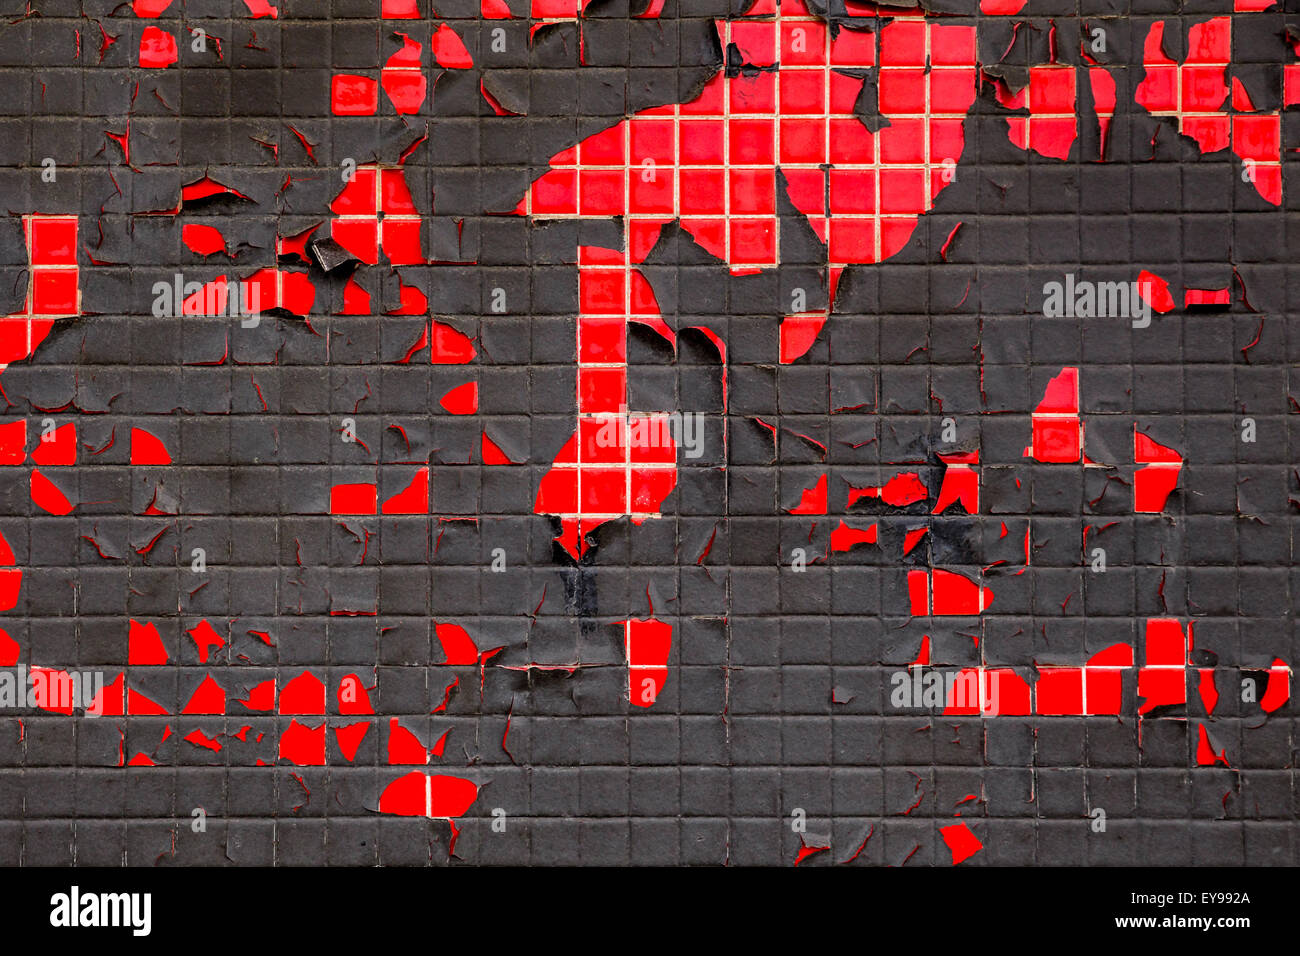 Grungy red and black tile and peeling paint wall - Stock Image